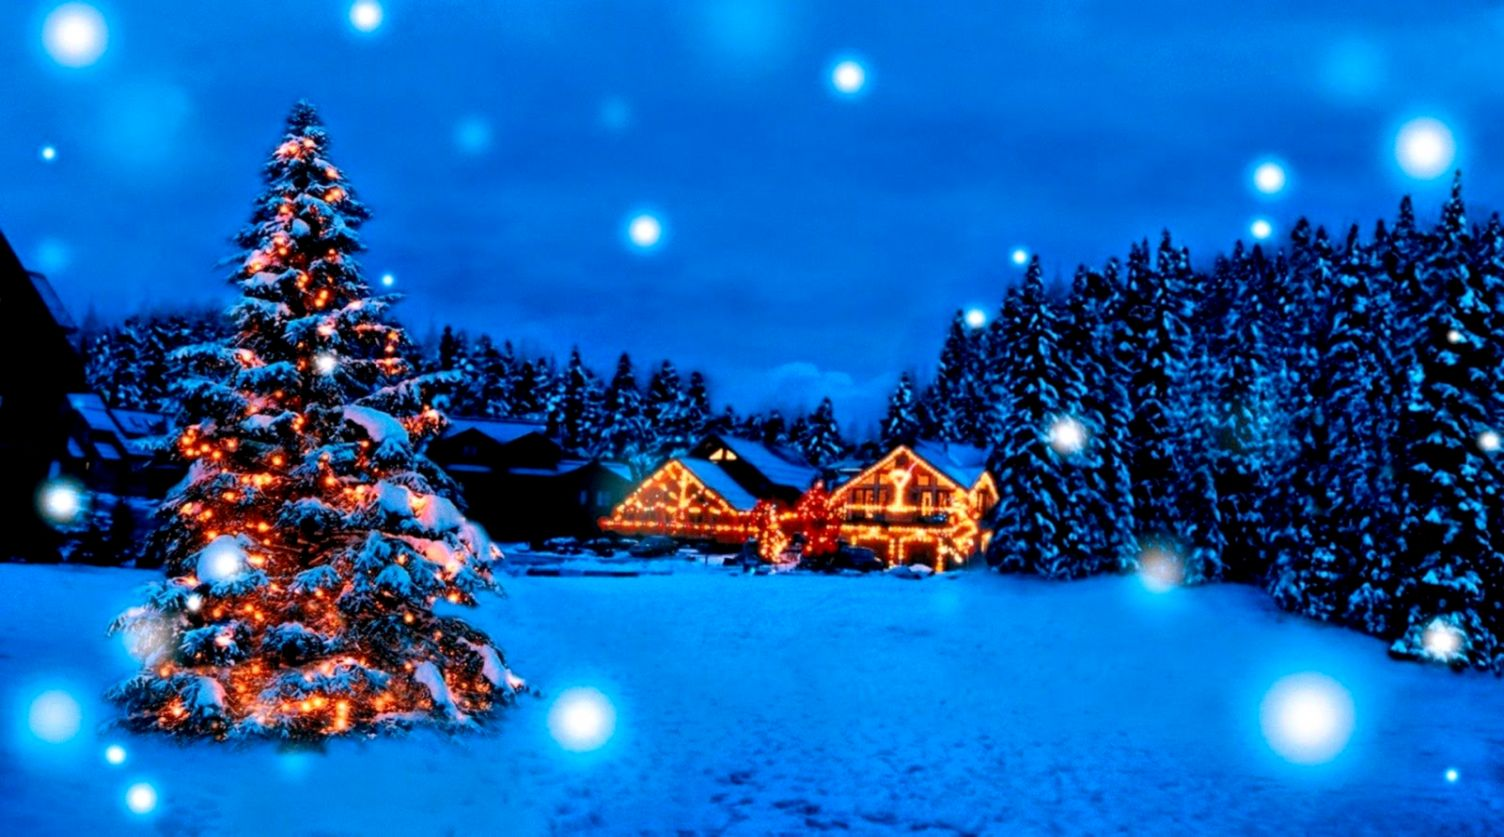 Enjoyable Hd Xmas Desktop Wallpaper Wallpapers App Home Interior And Landscaping Palasignezvosmurscom